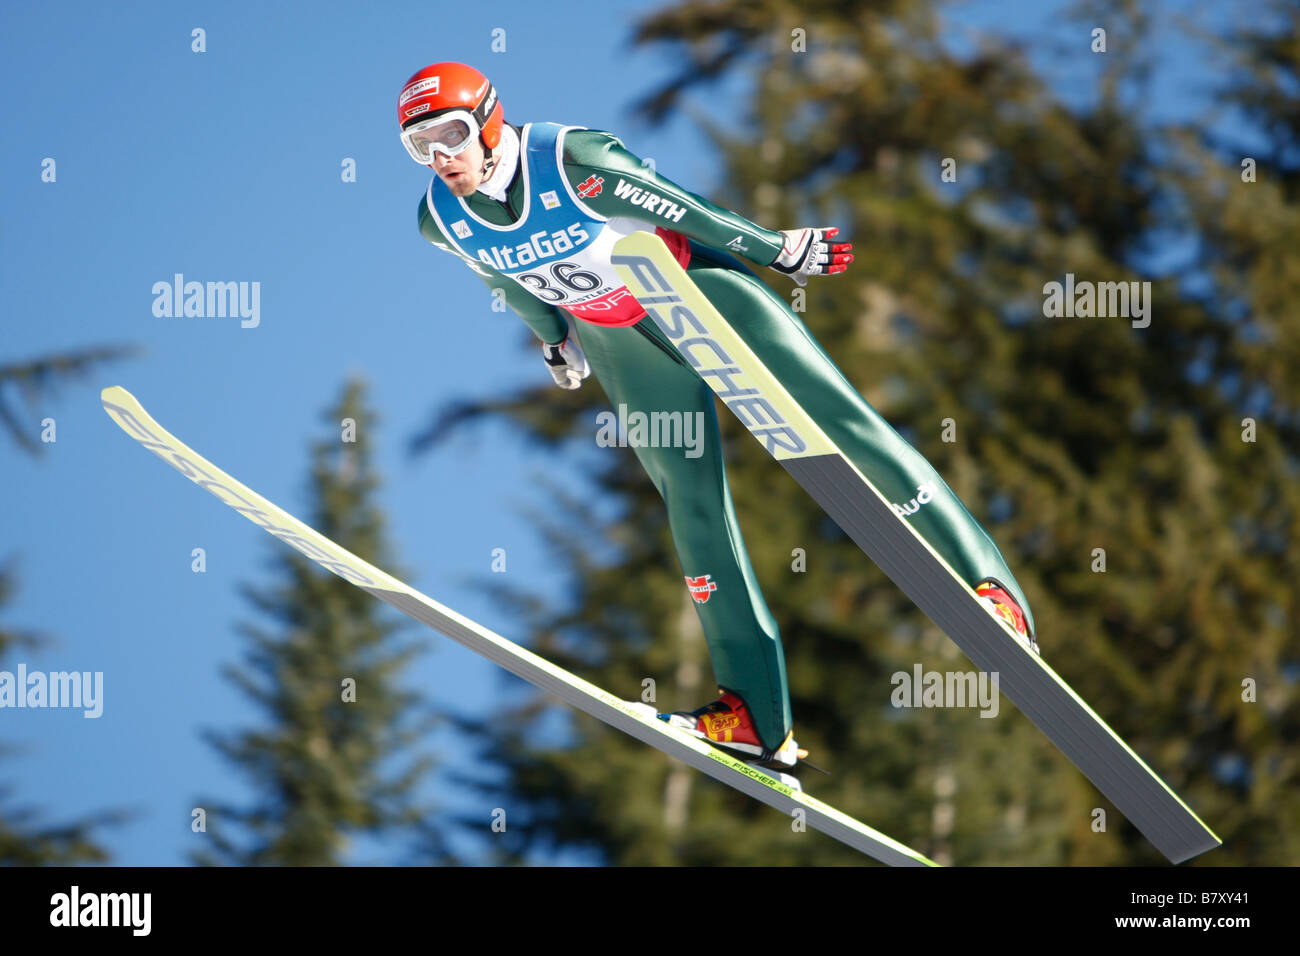 Bjoern Kircheisen GER JANUARY 17 2008 Nordic Combined Bjorn Kircheisen of Germany competes during the DKB FIS Nordic - Stock Image